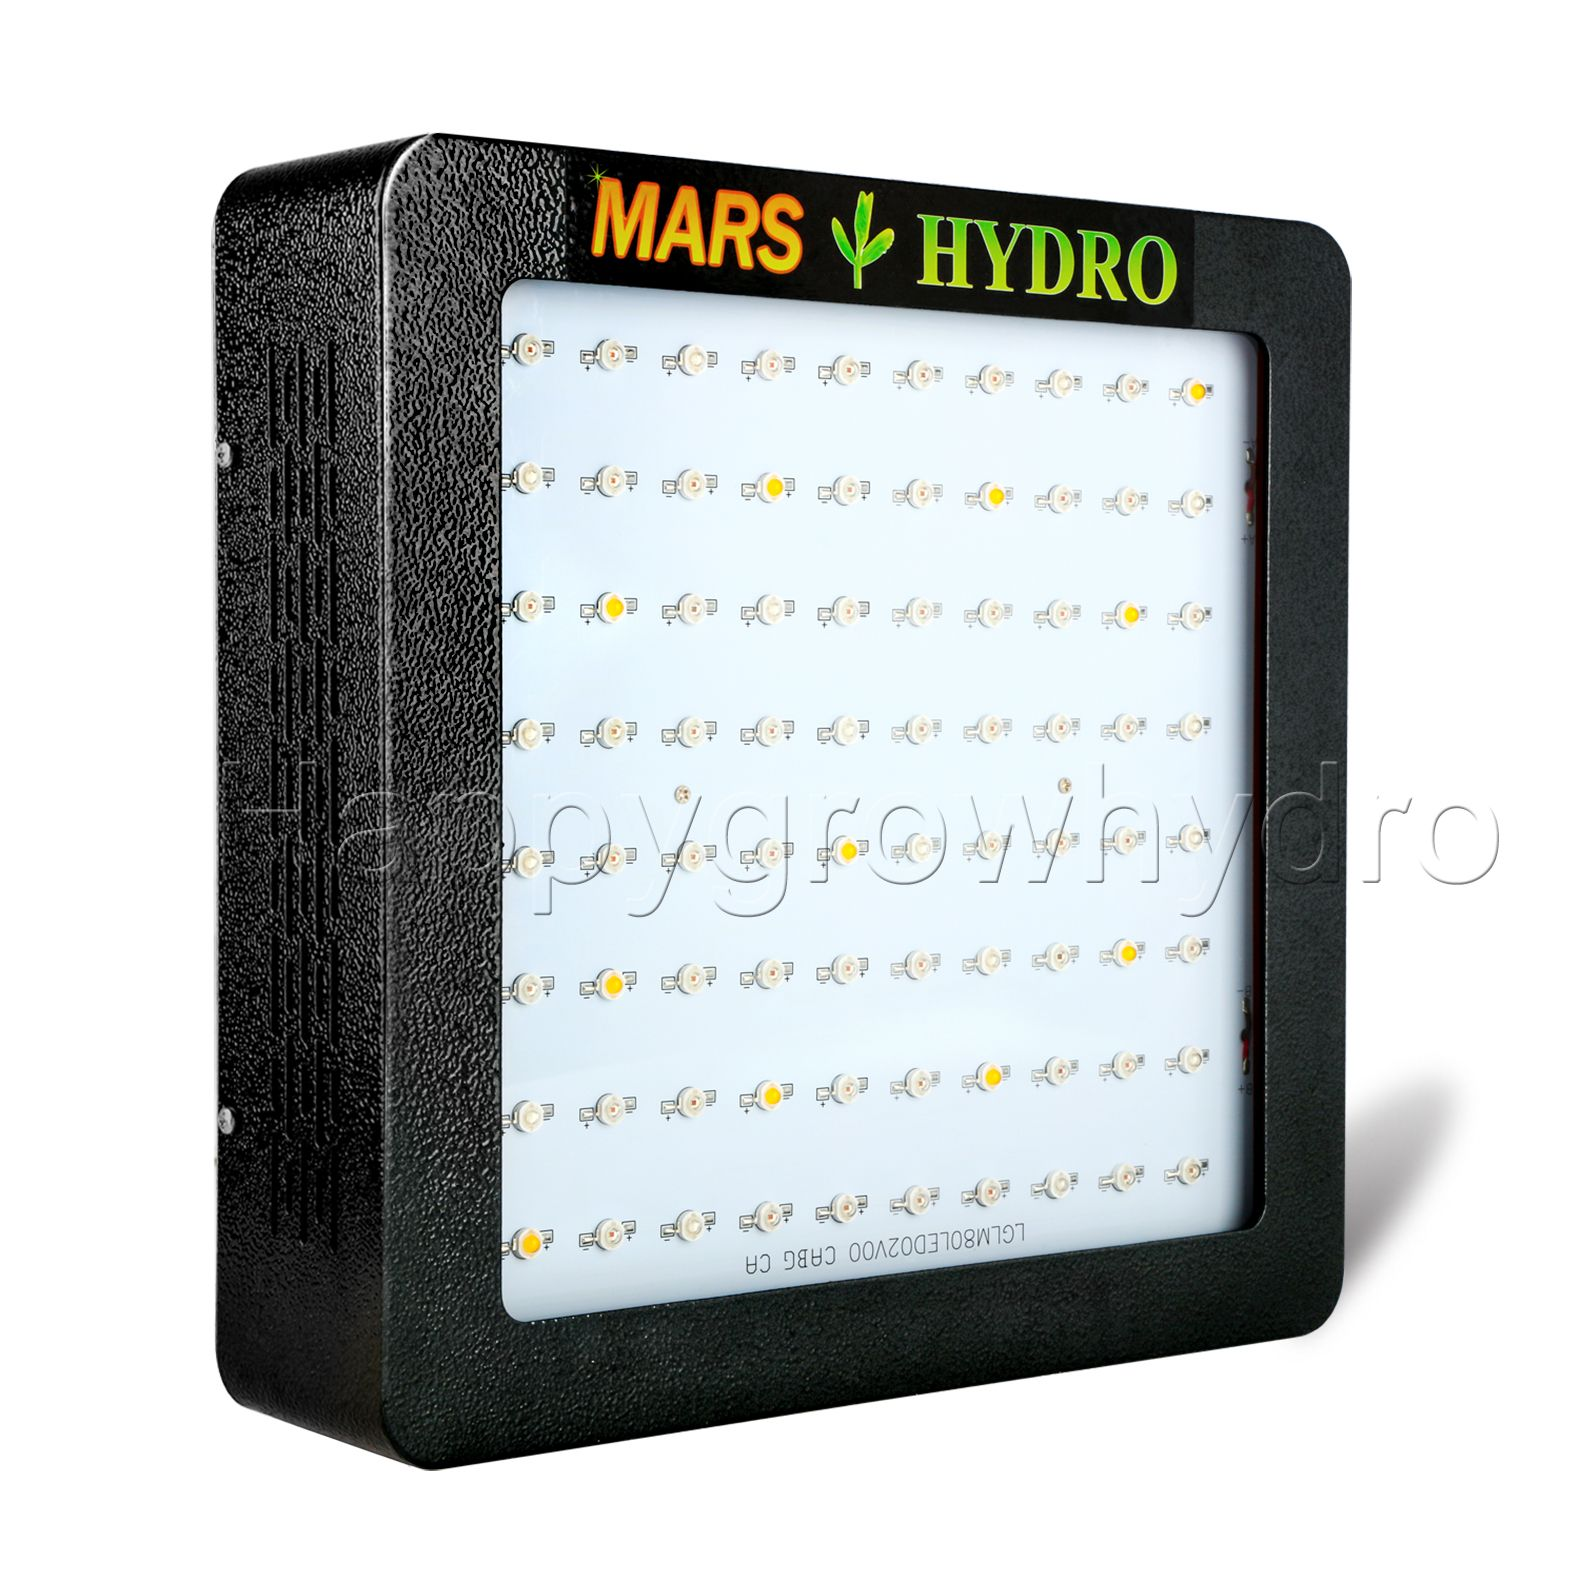 Marsii 400 The Coverage Is 2 5 X 2 5 It Can Replace 250 Watt Hps Welcome To Contact Us Led Grow Lights Grow Lights Led